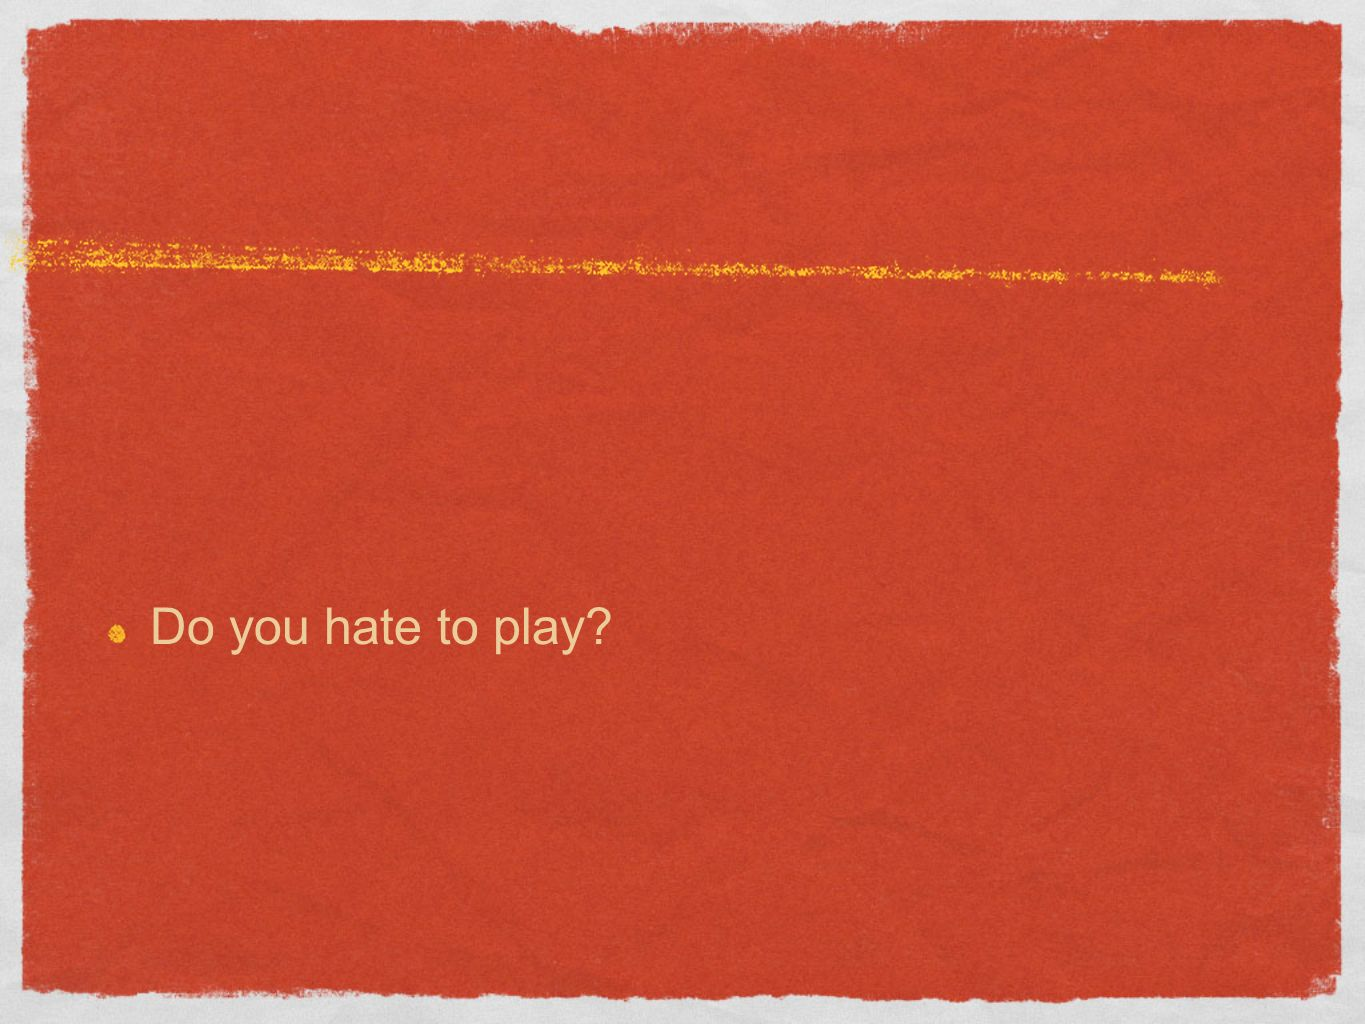 Do you hate to play